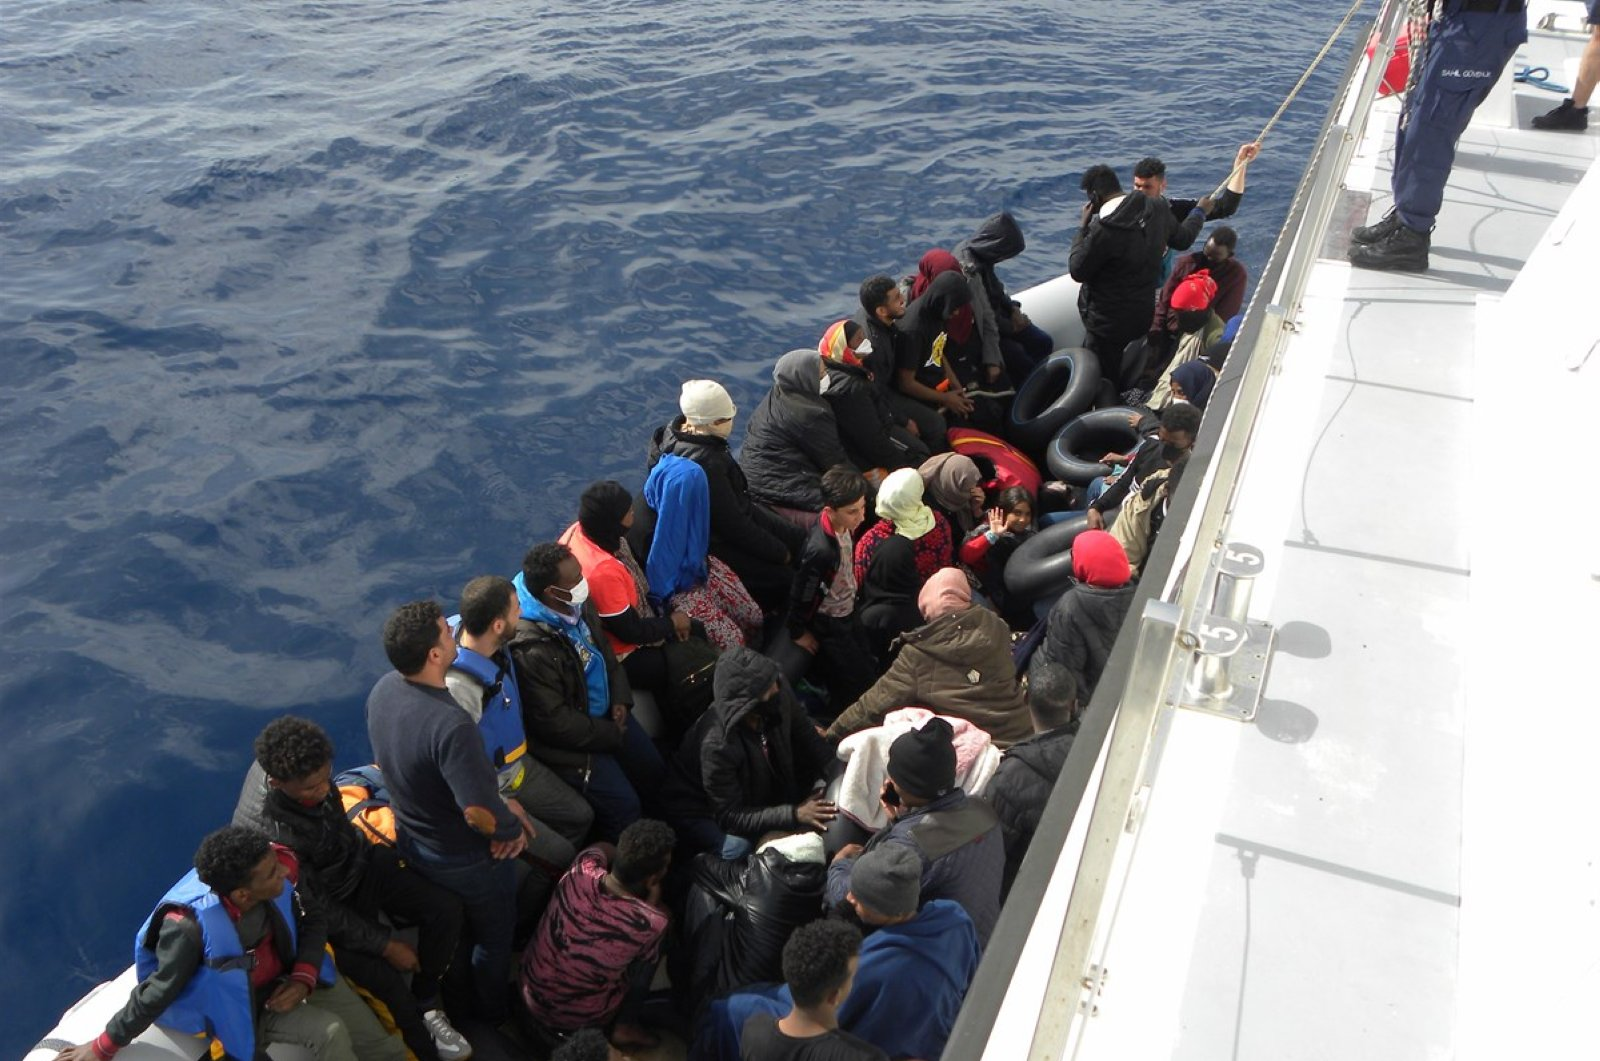 Turkey's Coast Guard Command rescues 42 asylum-seekers from a boat pushed back by Greece's Hellenic Coast Guard, in Izmir province's Foça district, Turkey, June 12, 2020. (DHA Photo)